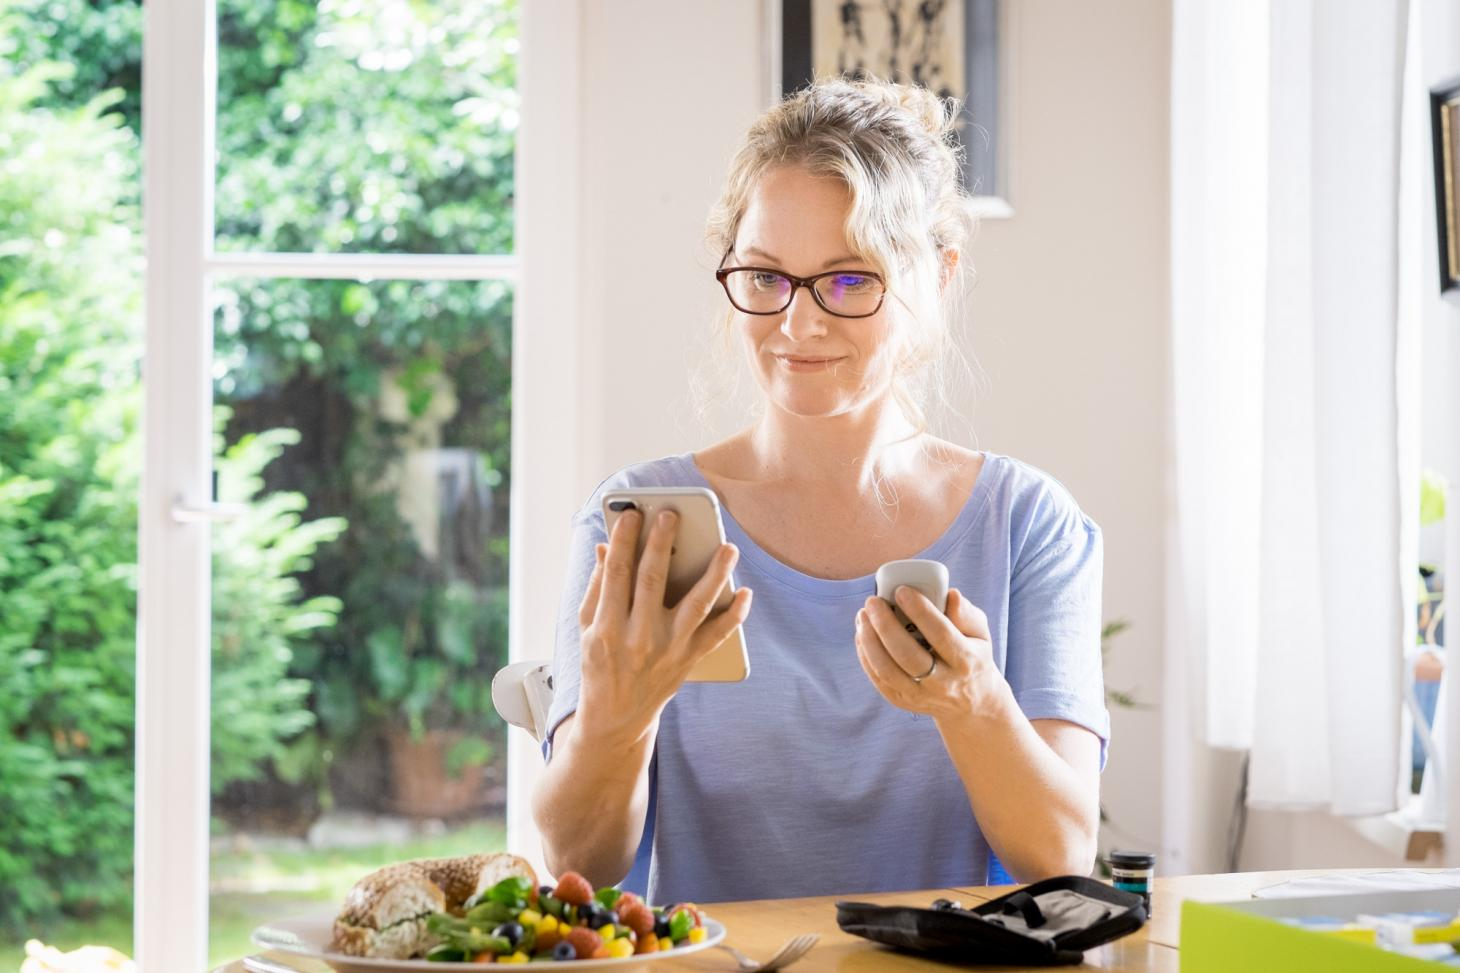 Woman wearing purple shirt and wearing glasses sitting at table next to window. Holding phone and Accu-Chek® Guide meter and there is a plate of food, half a bagel and a salad on the table. There are test strips on the table as well and the corner of the Bundle box.